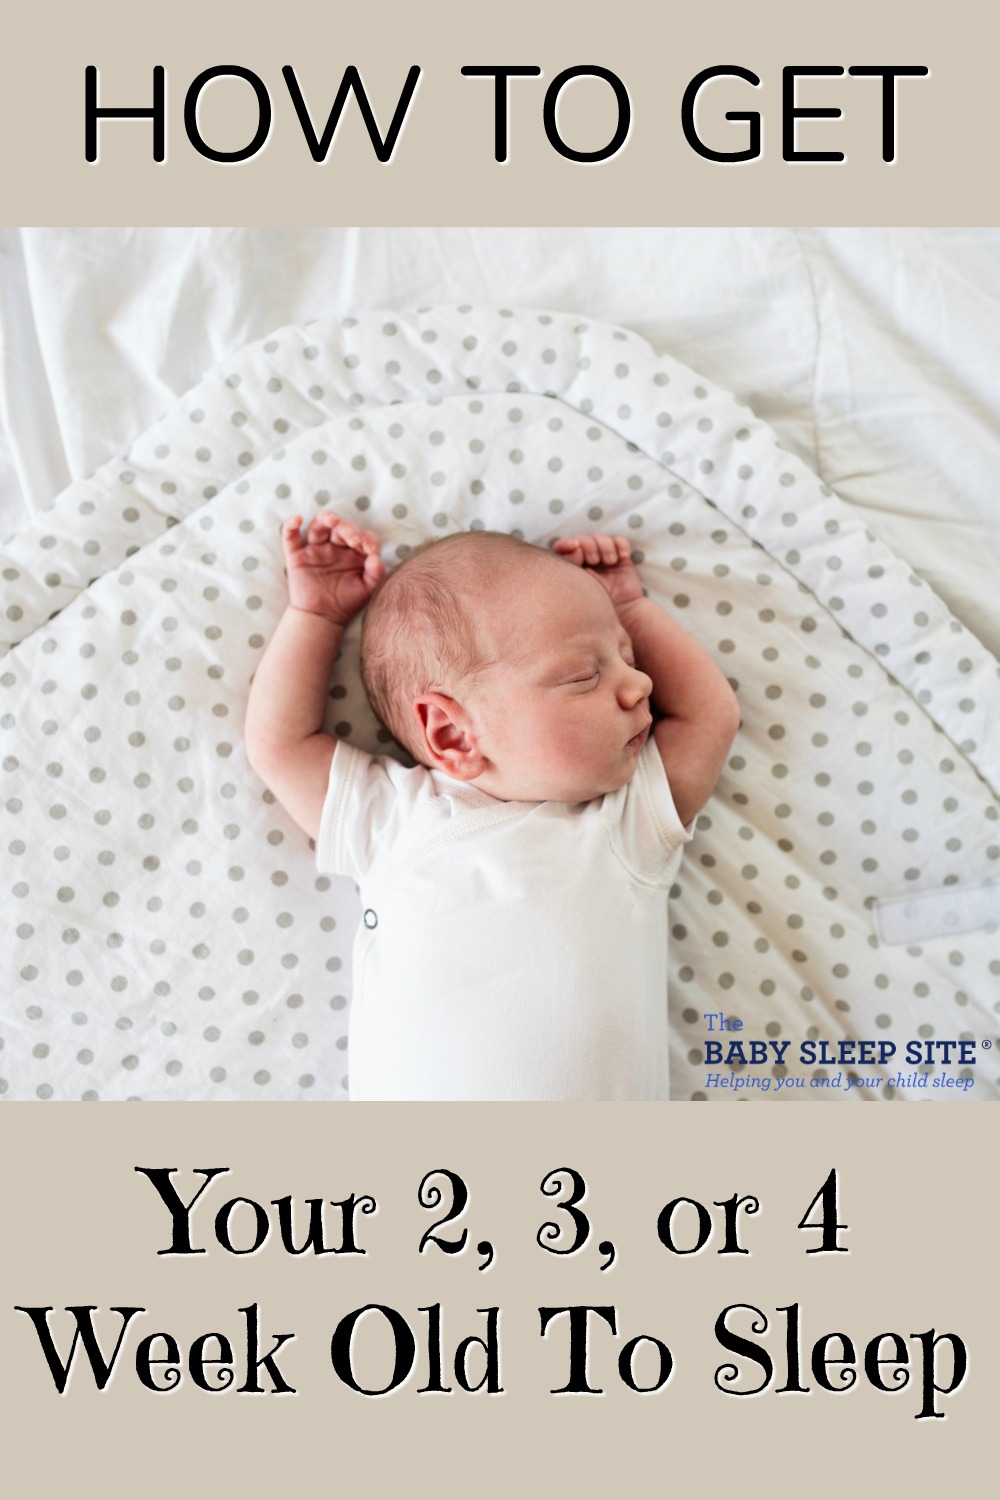 What Can Baby Sleep In Next To Bed How To Get My 2 3 Or 4 Week Old To Sleep The Baby Sleep Site